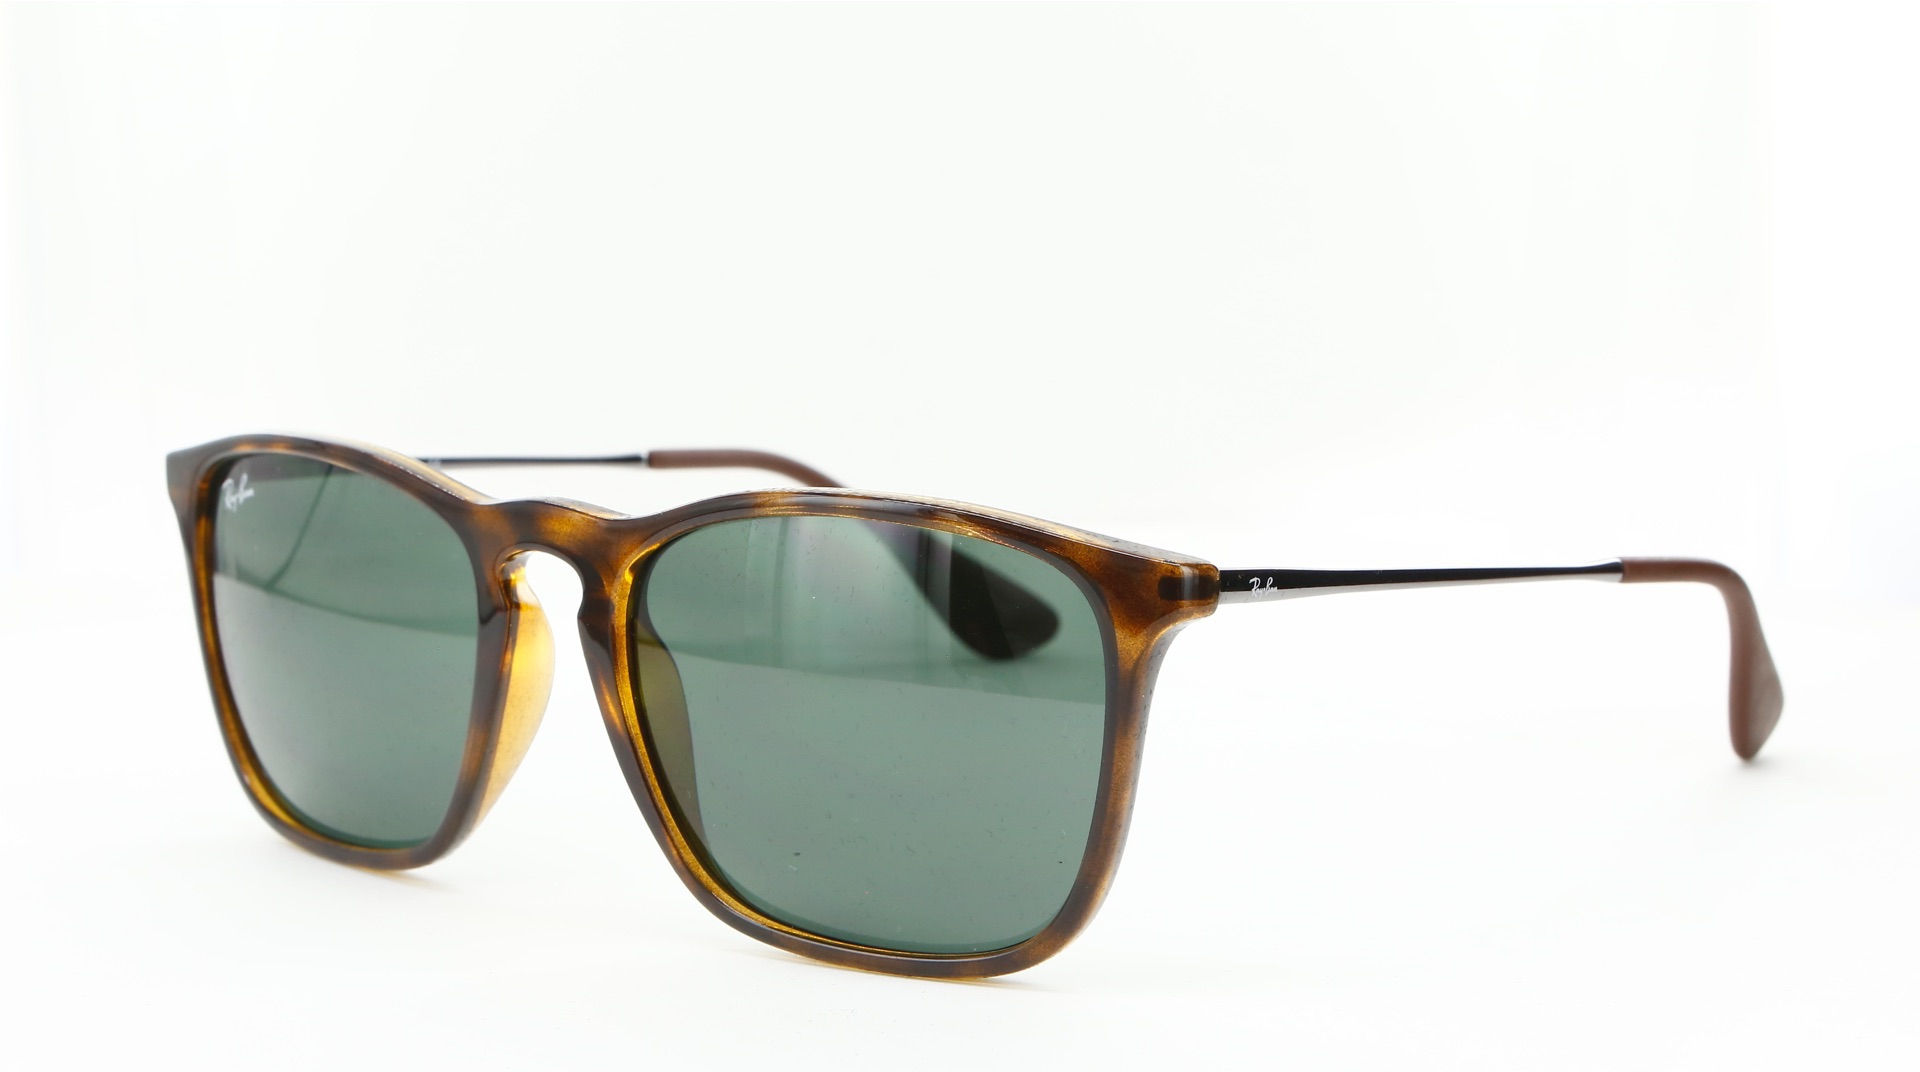 Ray-Ban - ref: 79129